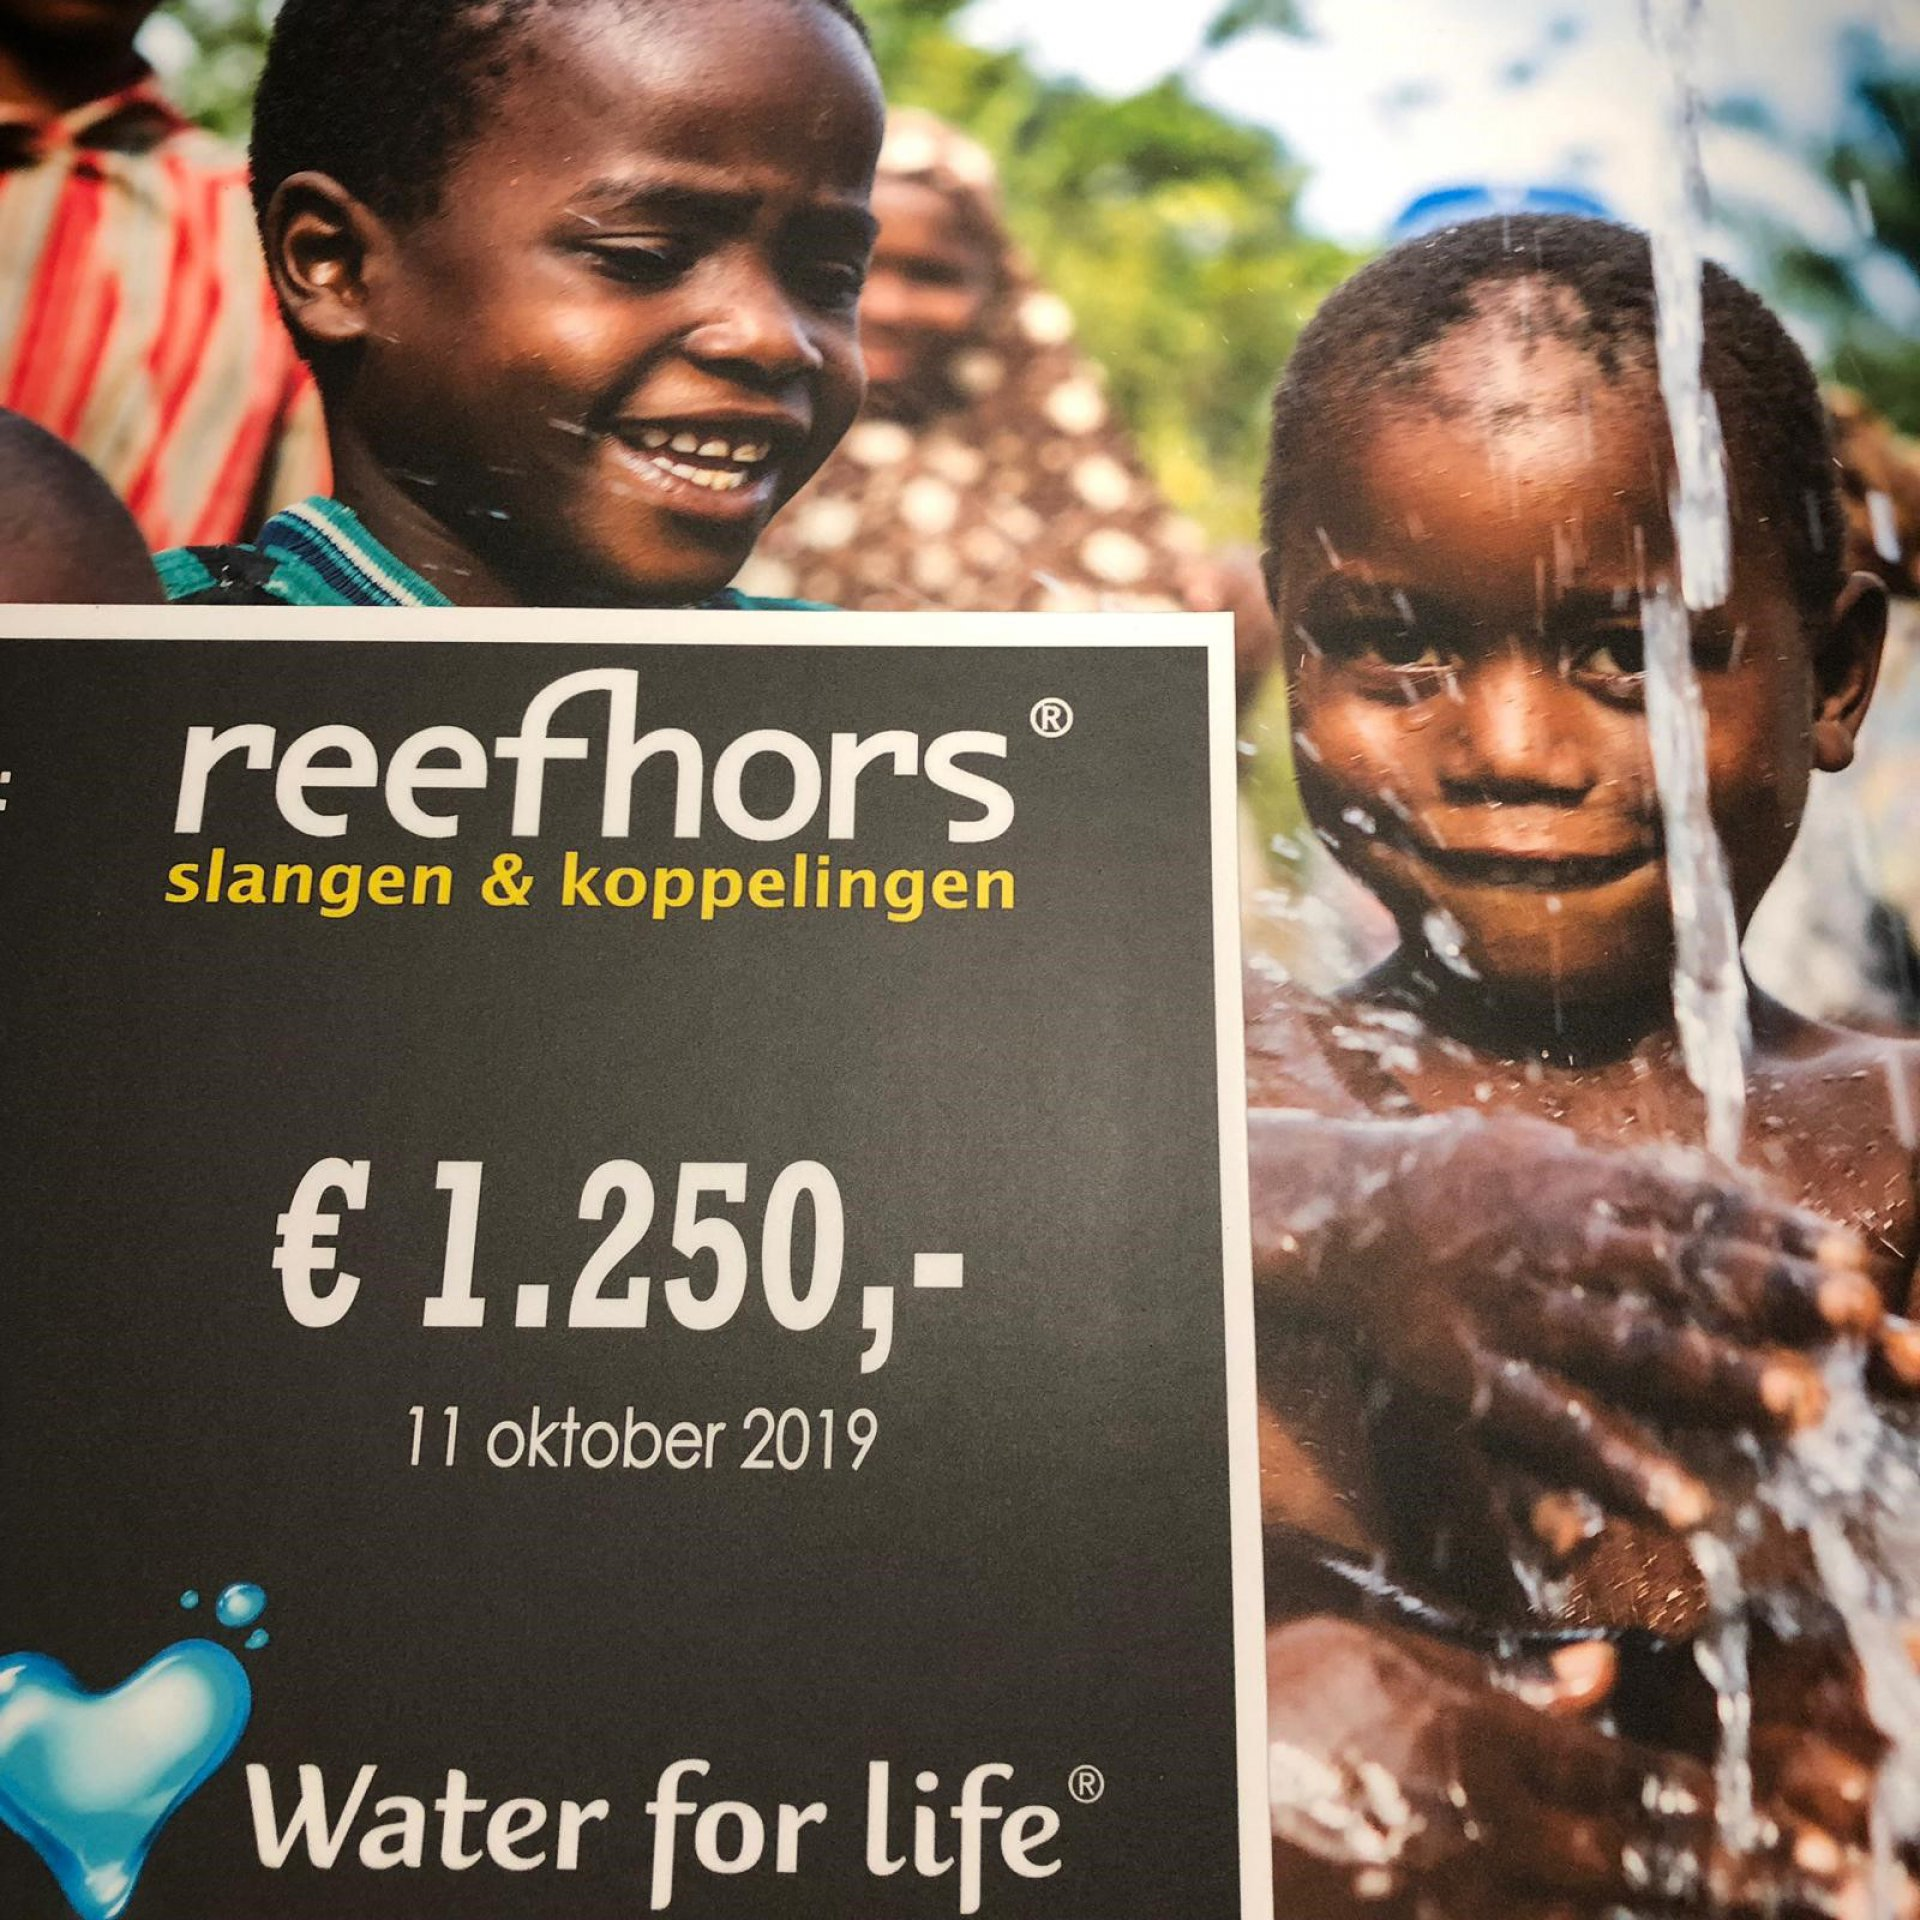 https://www.waterforlife.nl/files/visuals/_1920x1920_fit_center-center_85_none/Foto-Reefhorst-3.jpg